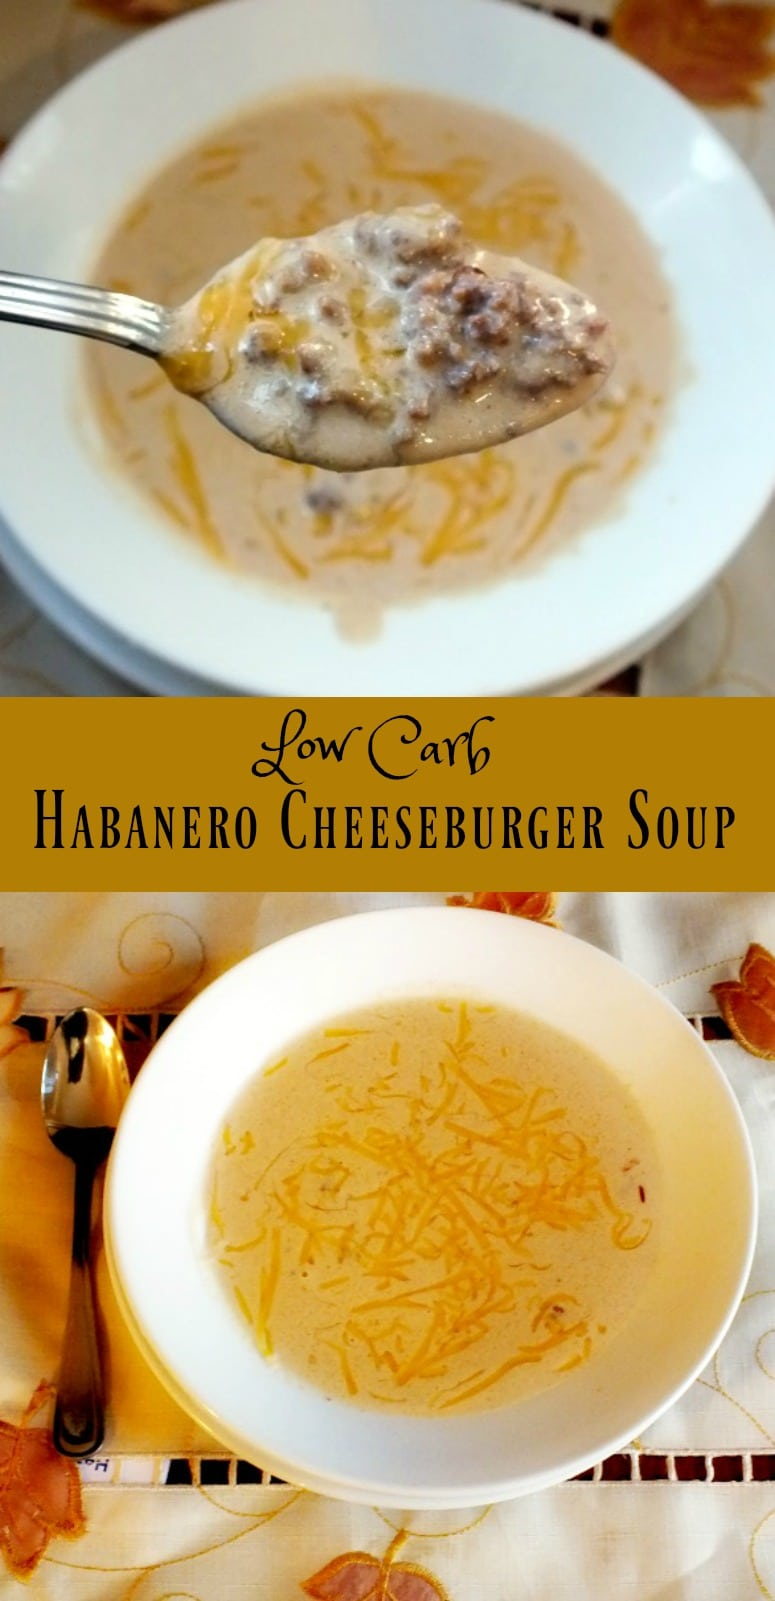 This low carb Habanero Cheeseburger soup is soul warming, tongue tingling comfort food - and it's easy!  From Lowcarb-ology.com